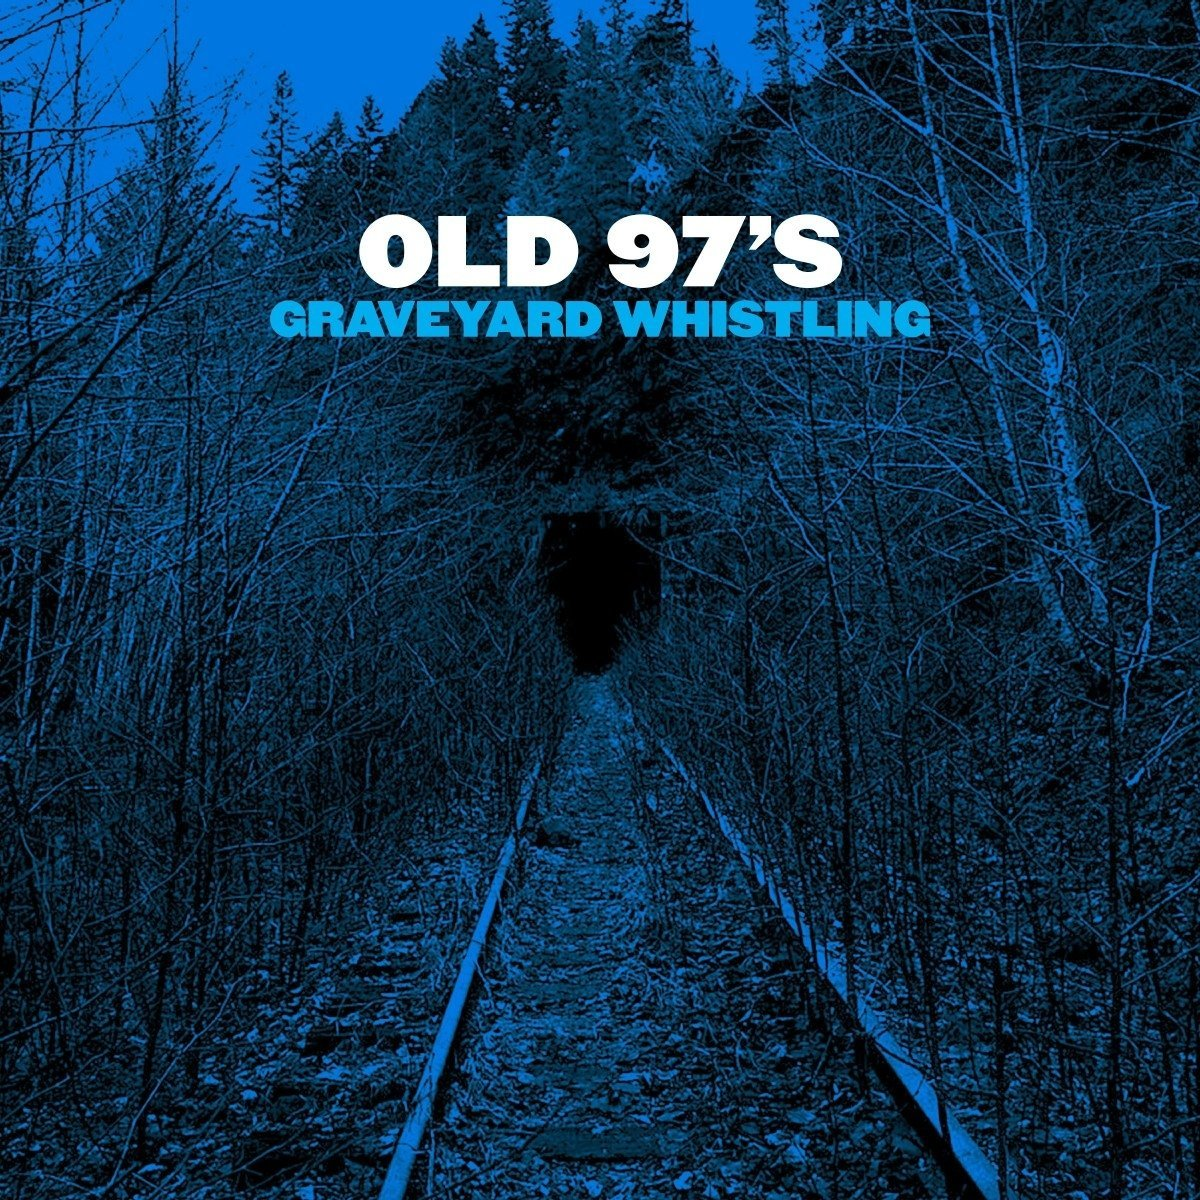 Old 97s - Graveyard Whistling